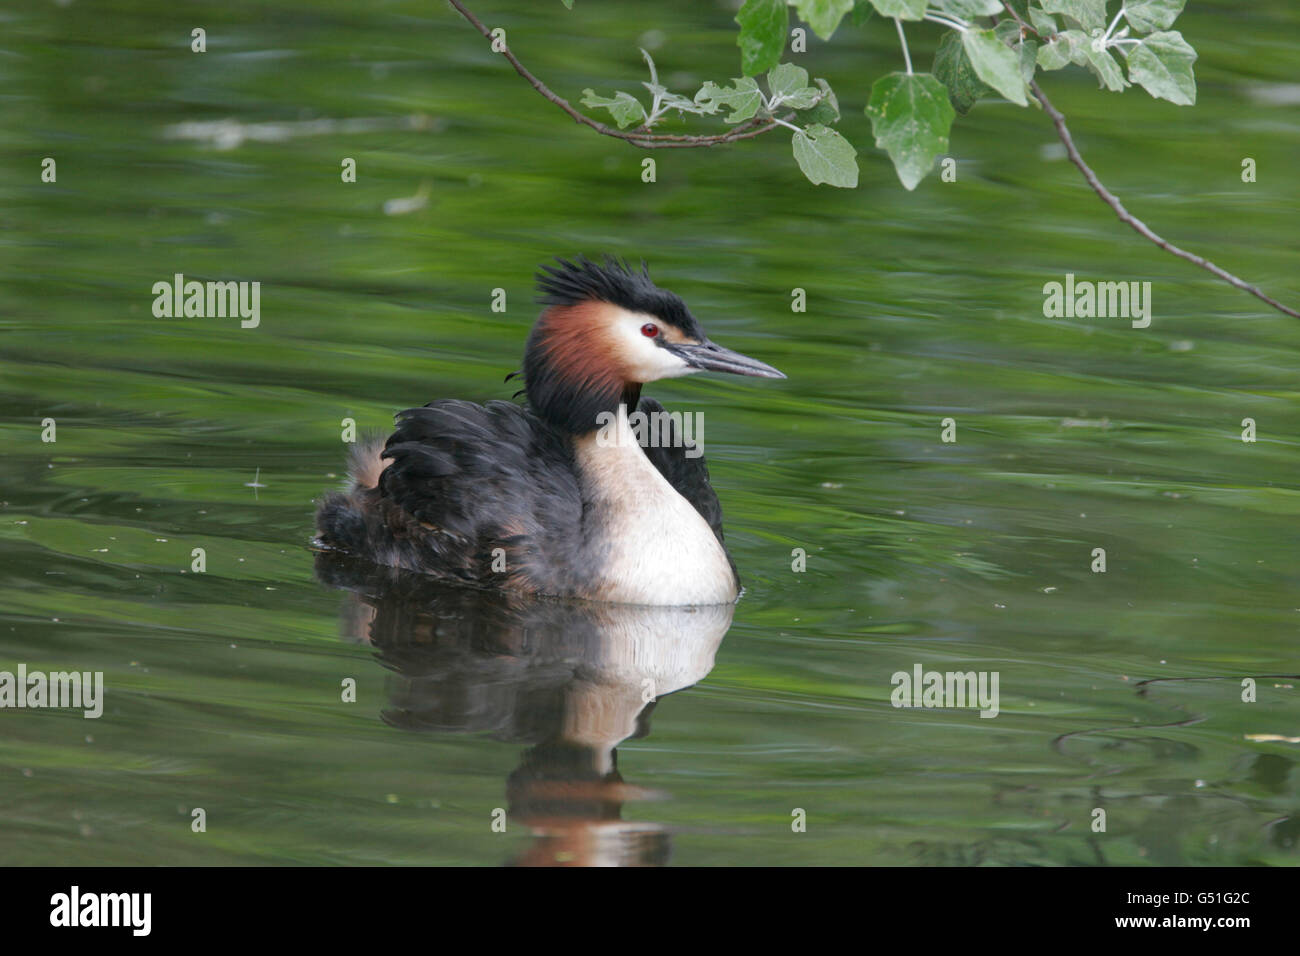 Great-crested Grebe, Podiceps cristatus, single adult swimming. Taken May. Lea Valley, Essex, UK. - Stock Image